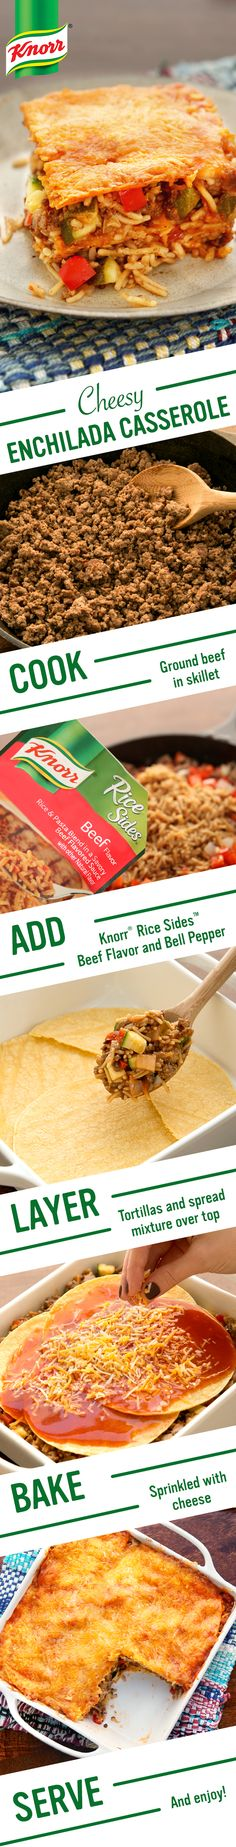 Celebrate Cinco de Mayo with Knorr's flavorful Beef & Cheese Enchilada… Cheese Enchilada Casserole, Enchilada Sauce, Casserole Recipes, Cheese Enchiladas, Think Food, I Love Food, Good Food, Yummy Food, Beef Recipes